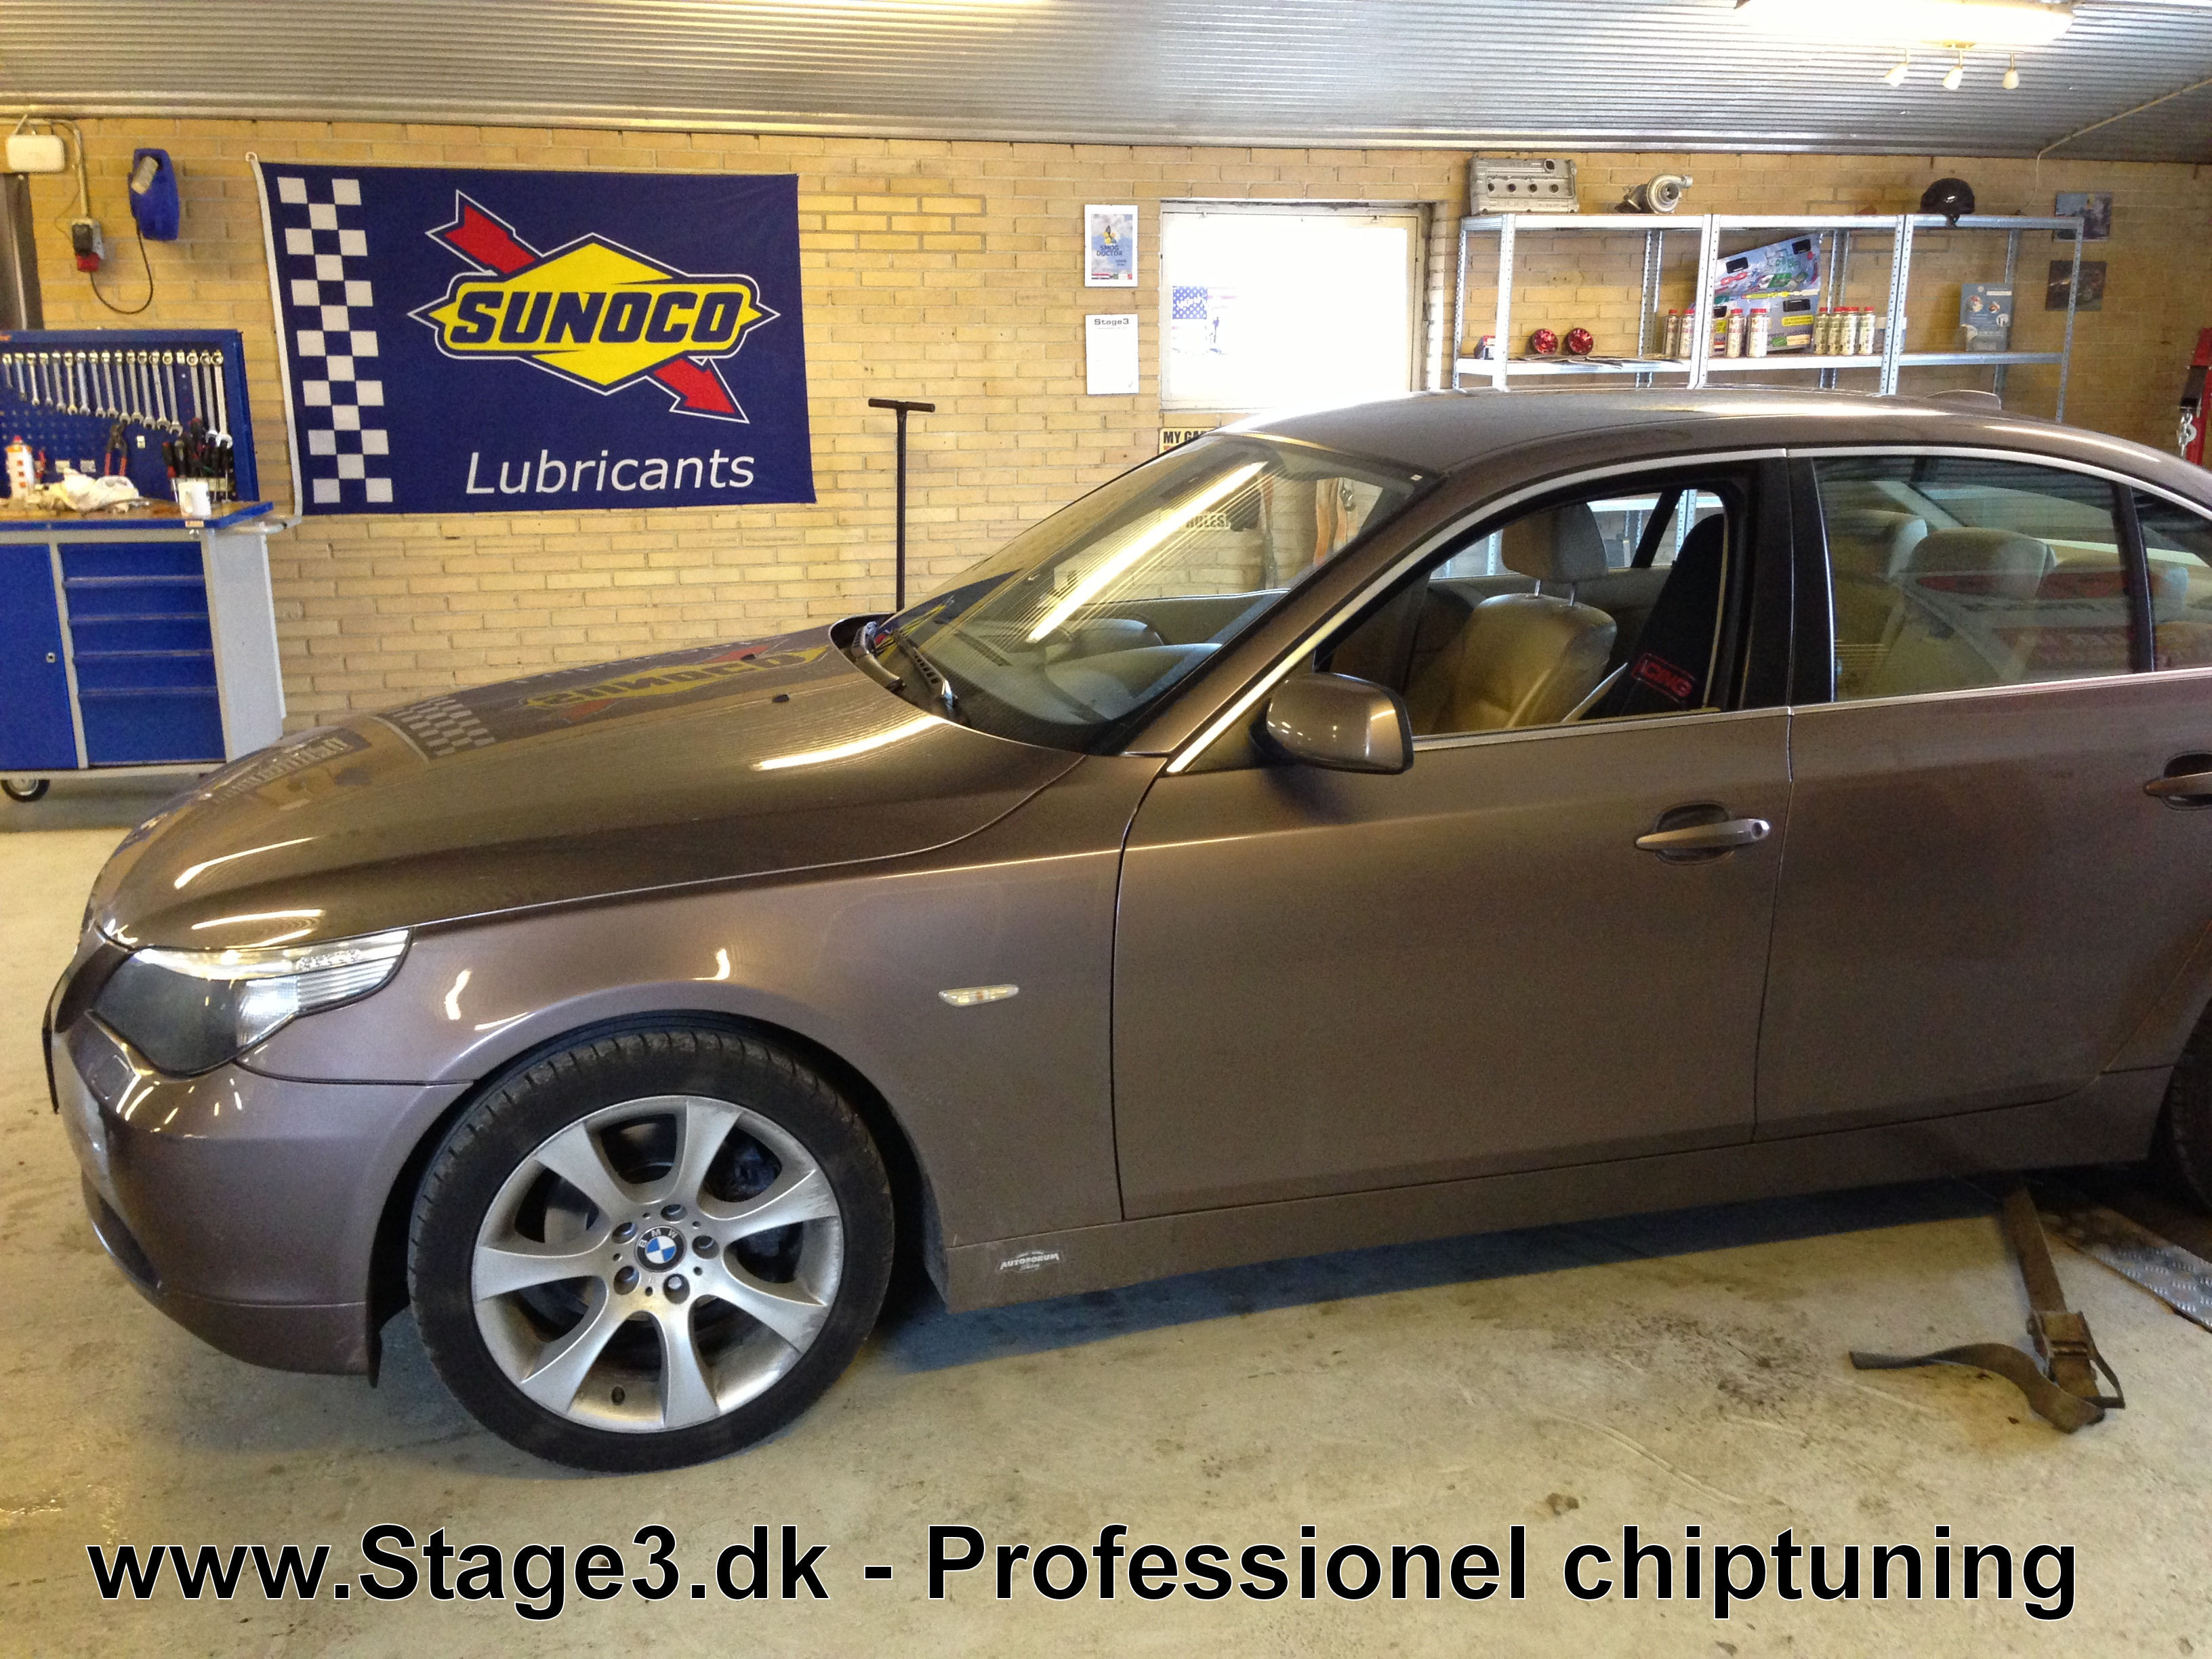 BMW 520d chiptuning (1)